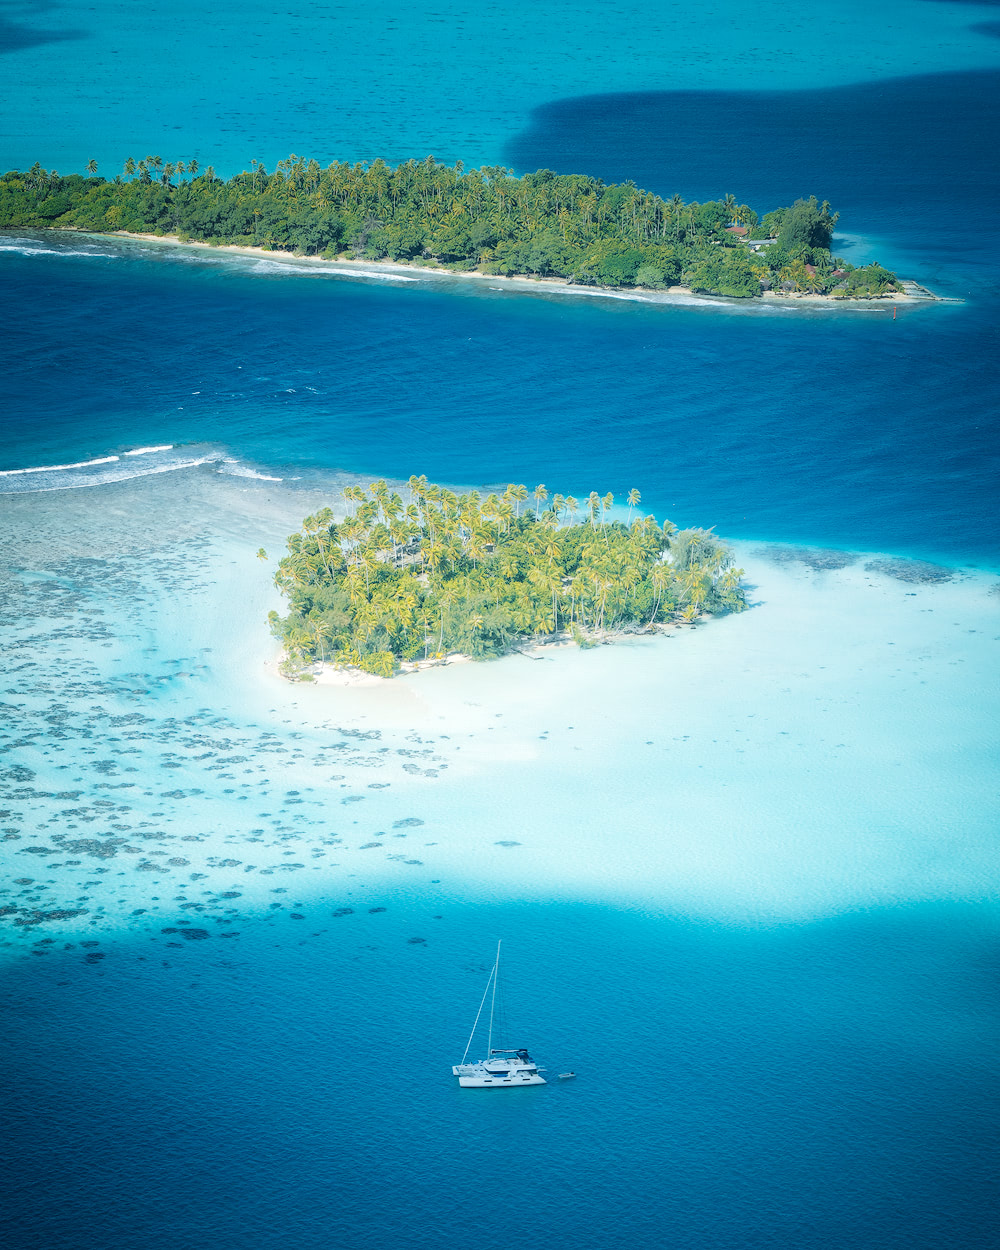 The Islands of Tahiti Le Tahaa Island Resort and Spa Renee Roaming Seaplane 2